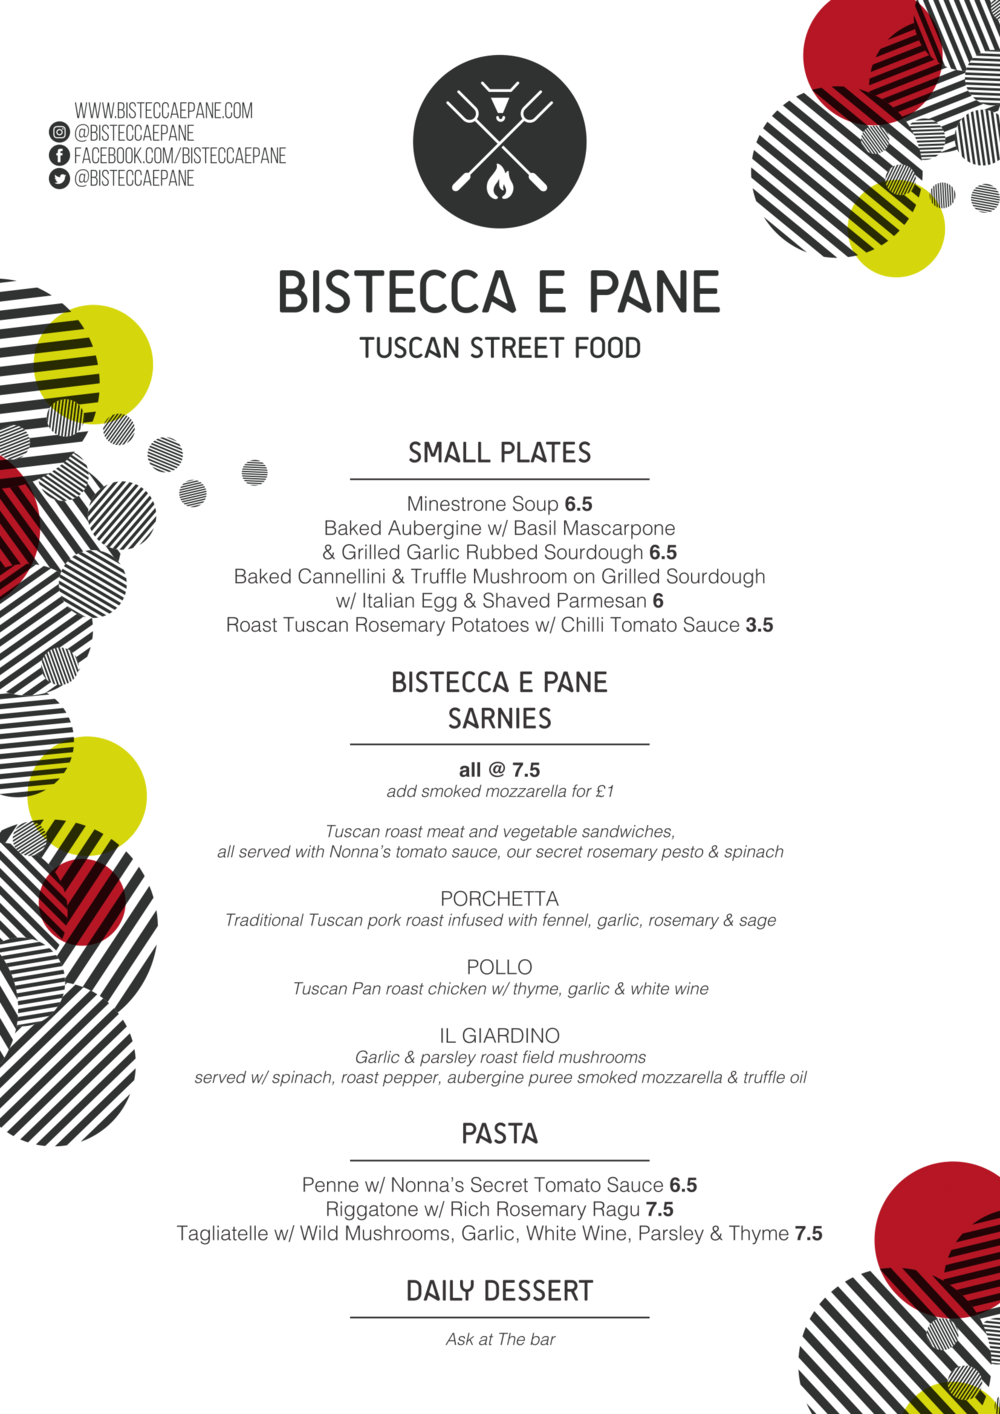 Bistecca e pane - Green rooms 2017 - menu A4_v03-1.png